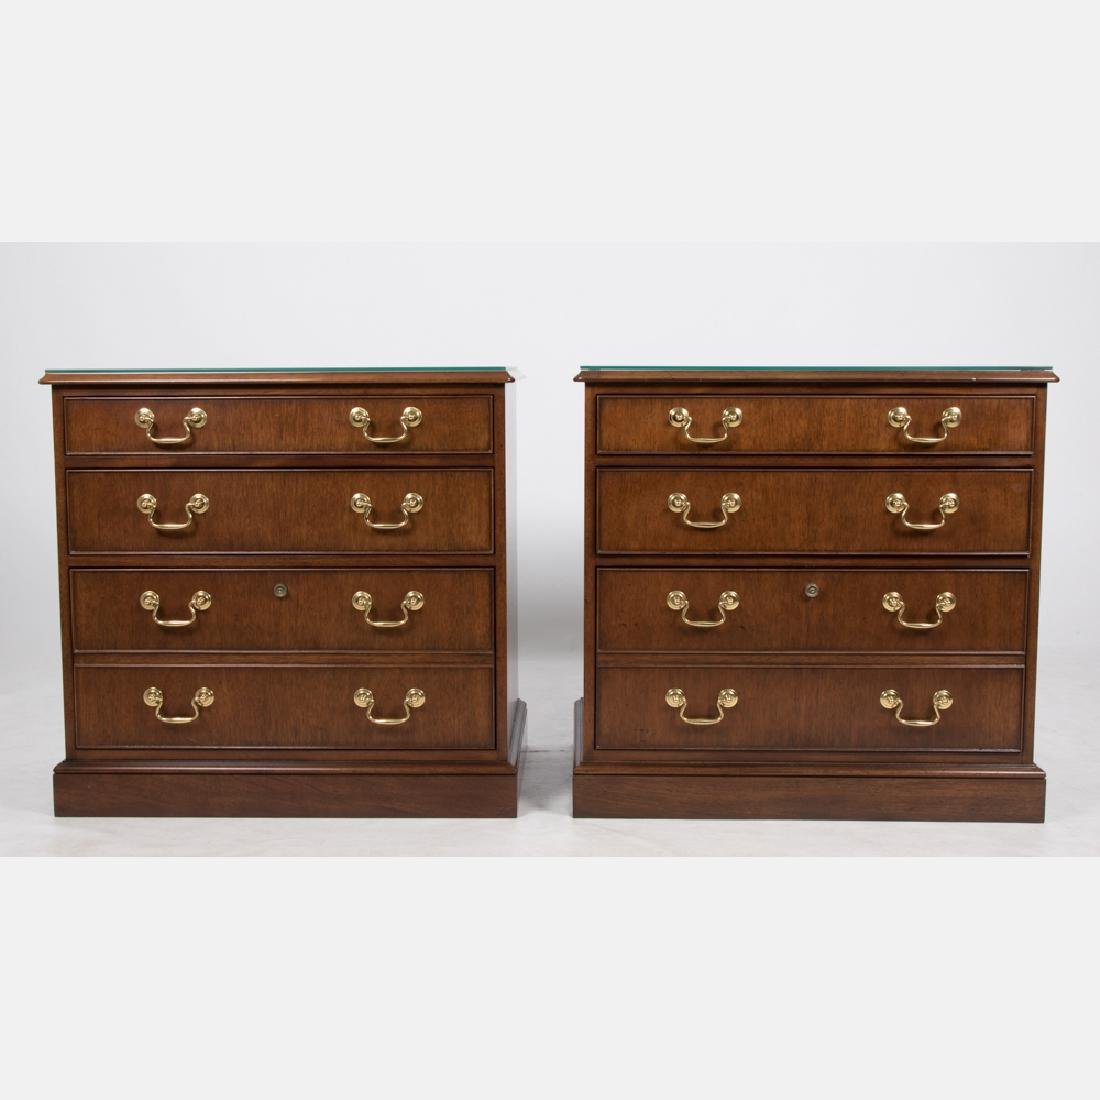 A Pair of Baker Furniture Georgian Style Walnut and